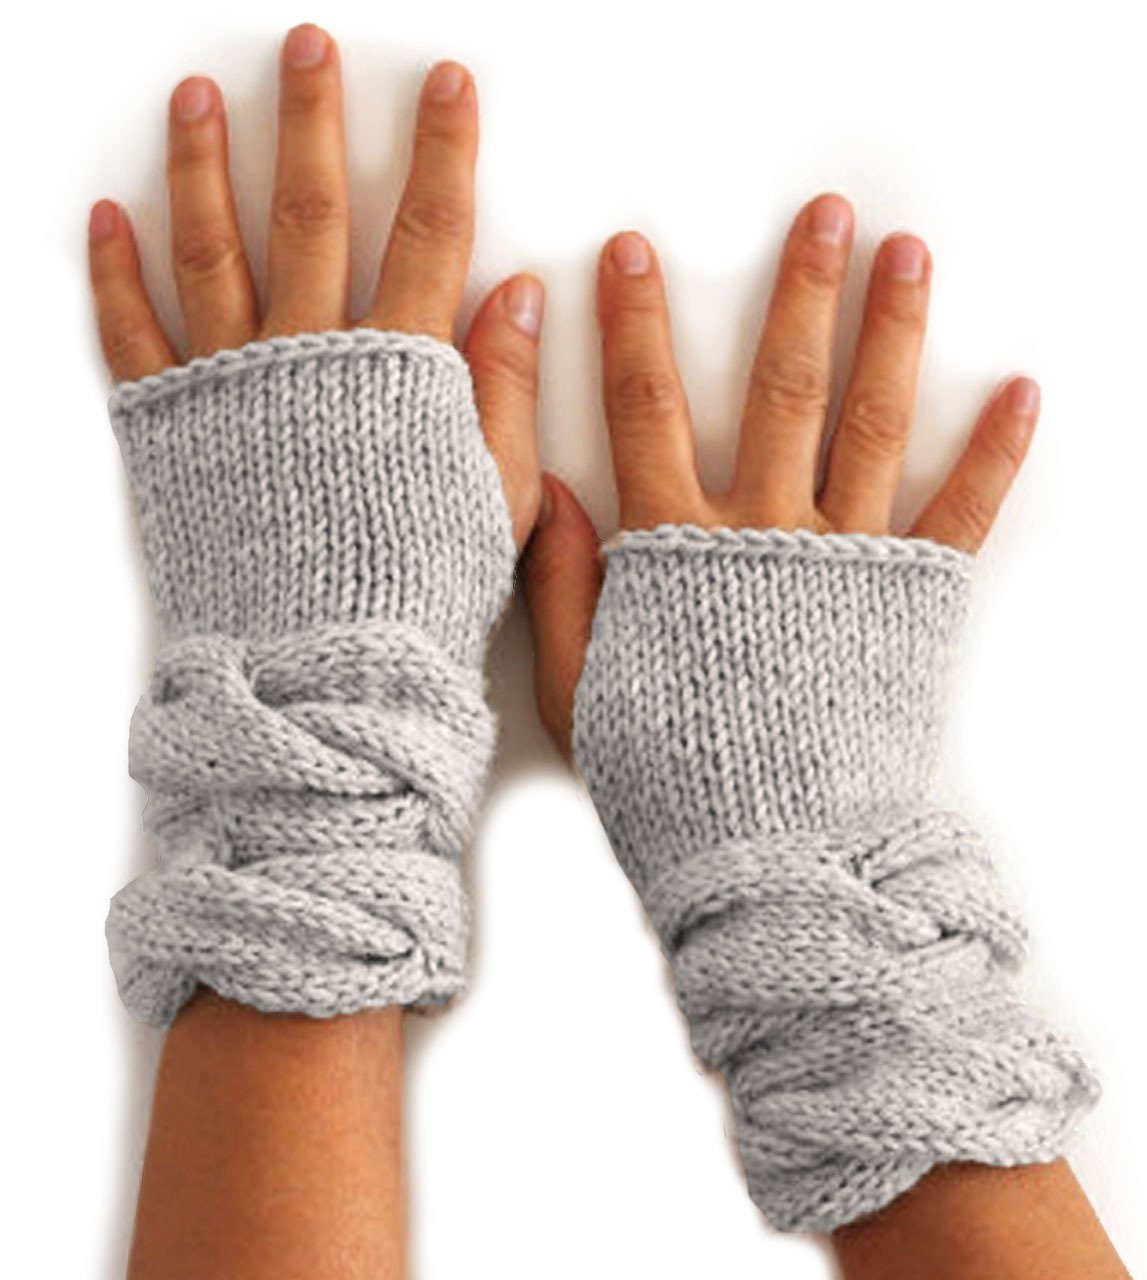 Inca Fashions - Chunky Cable Texting Mittens - Wrist Warmer Fingerless Gloves